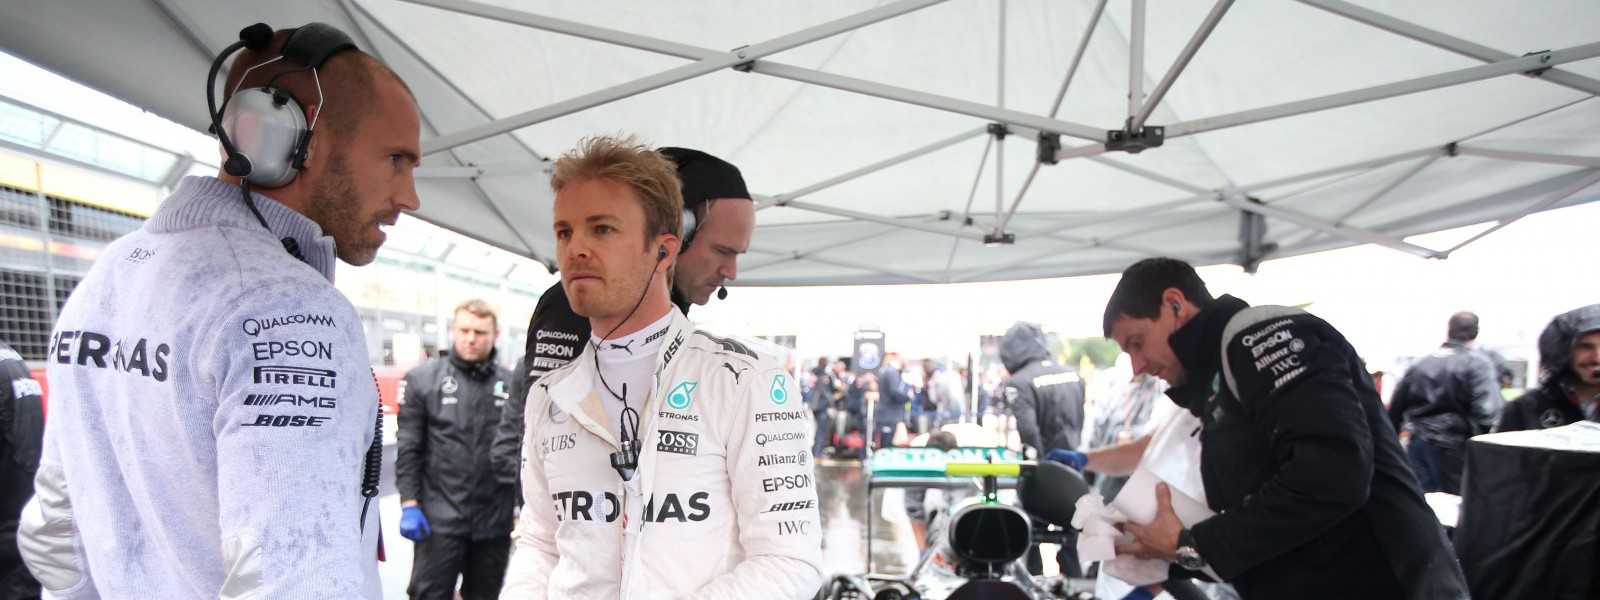 Motorsports: FIA Formula One World Championship 2016, Grand Prix of Great Britain,  Daniel Schloesser (GER, Mercedes AMG Petronas Formula One Team), #6 Nico Rosberg (GER, Mercedes AMG Petronas Formula One Team),  *** Local Caption *** +++ www.hoch-zwei.net +++ copyright: HOCH ZWEI +++